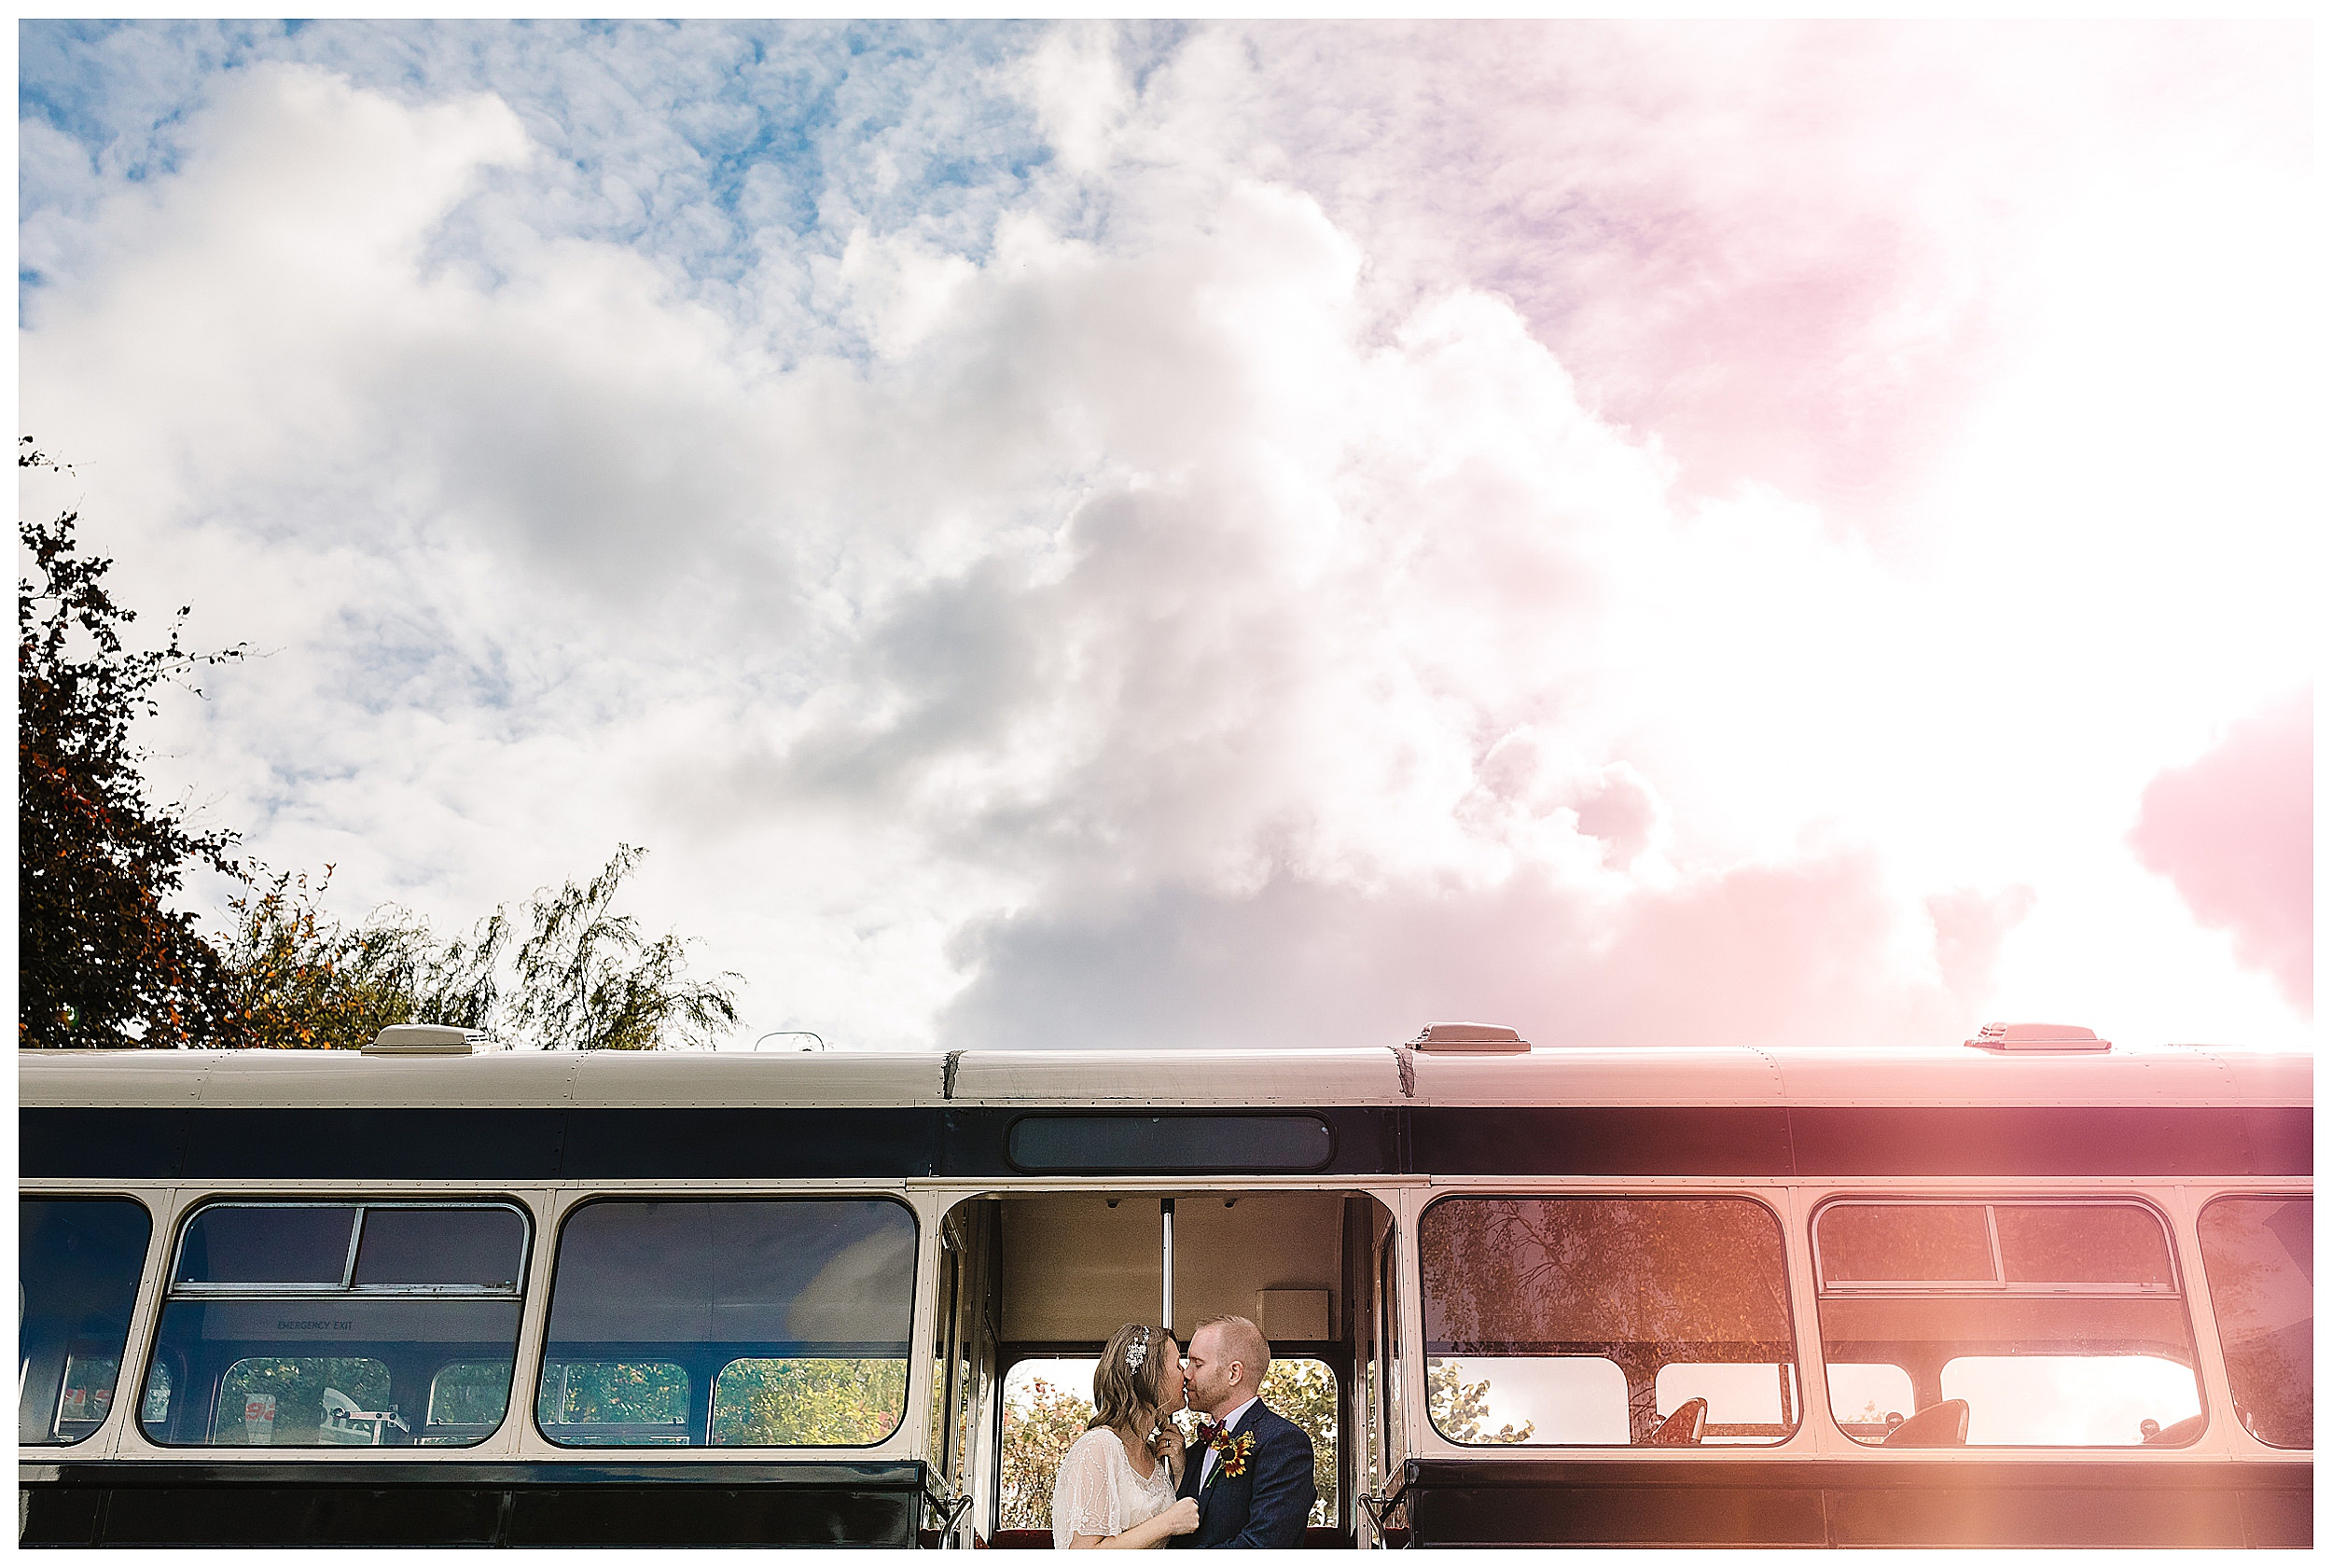 A bride and groom kissing on a vintage bus